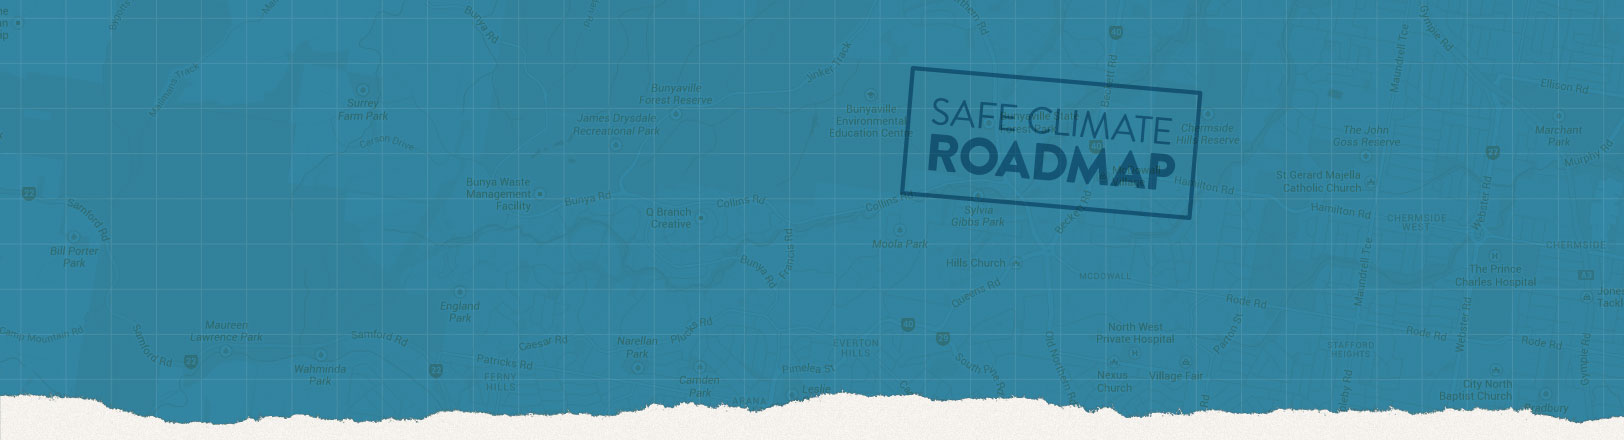 Safe Climate Roadmap